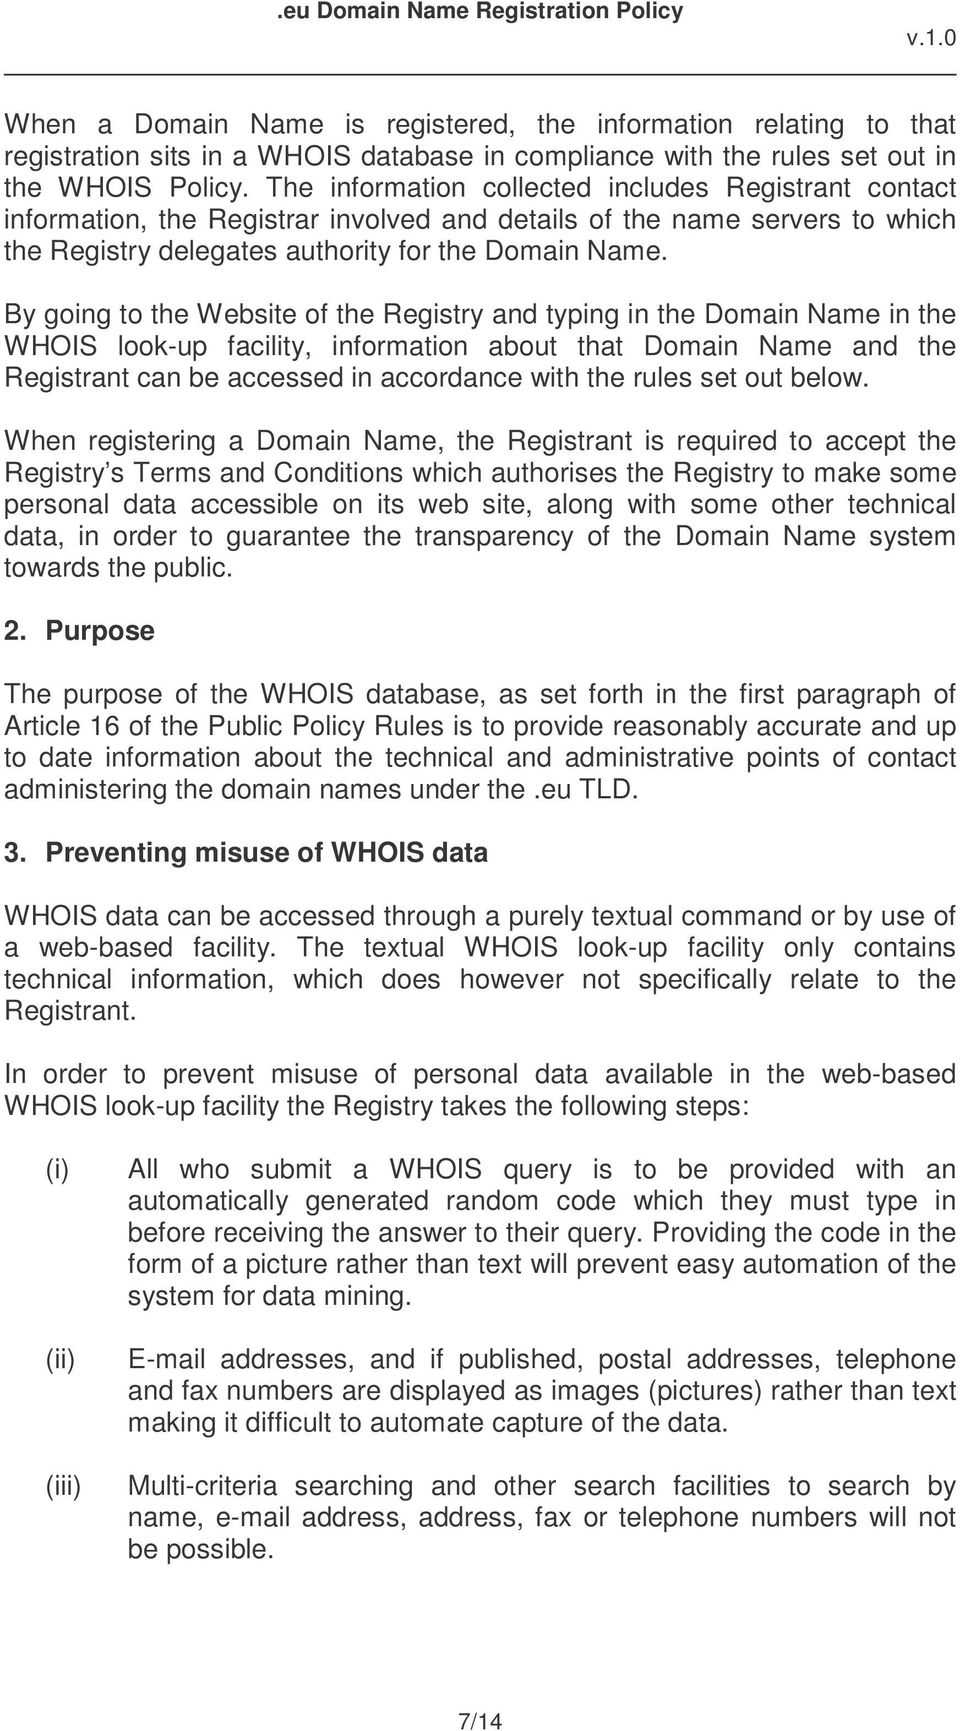 By going to the Website of the Registry and typing in the Domain Name in the WHOIS look-up facility, information about that Domain Name and the Registrant can be accessed in accordance with the rules